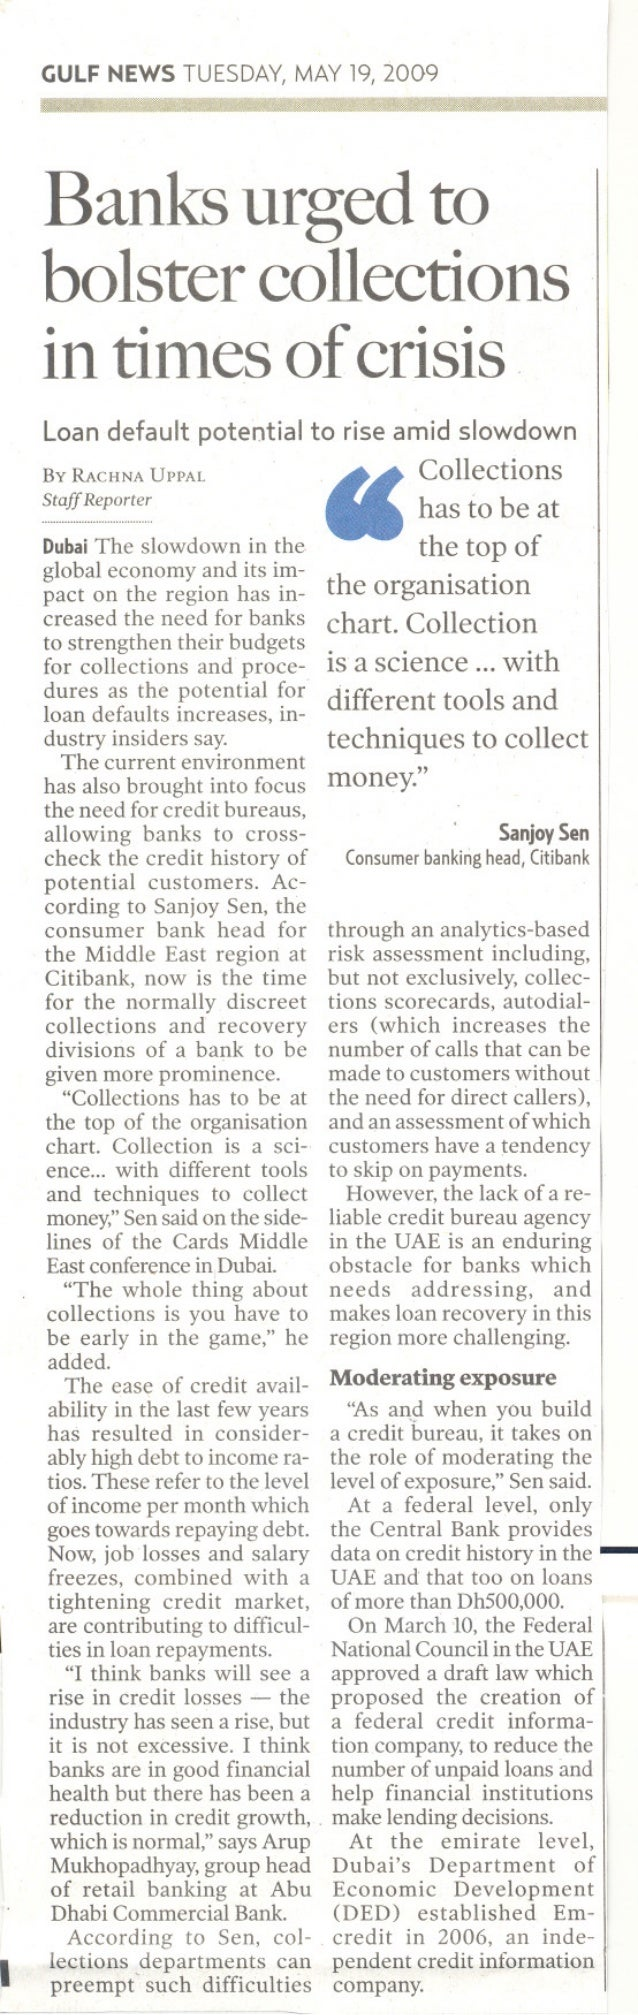 GULFNEWSTUESDAY,MAY19,2009Banks urged tobolster collectionsin times ofcrisisLoan default potential to rise amid slowdownBy...